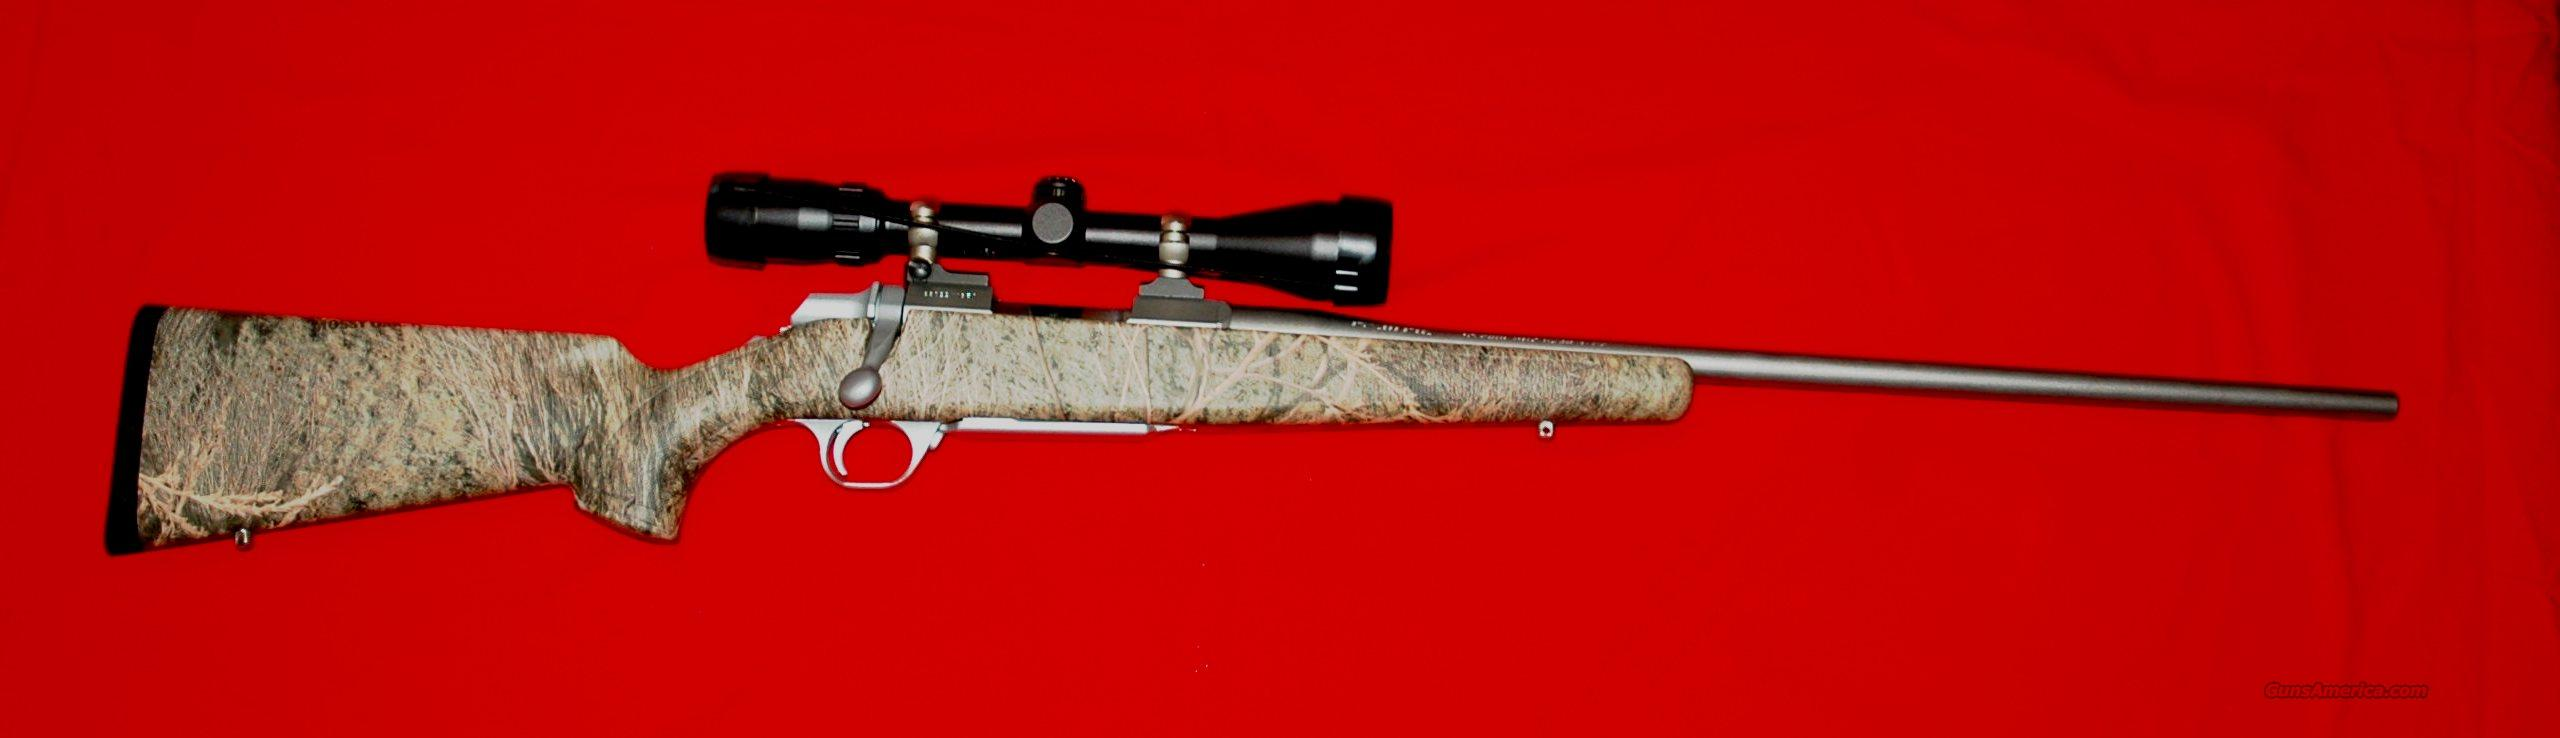 Browning A-Bolt2 325 WSM  Guns > Rifles > Browning Rifles > Bolt Action > Hunting > Stainless